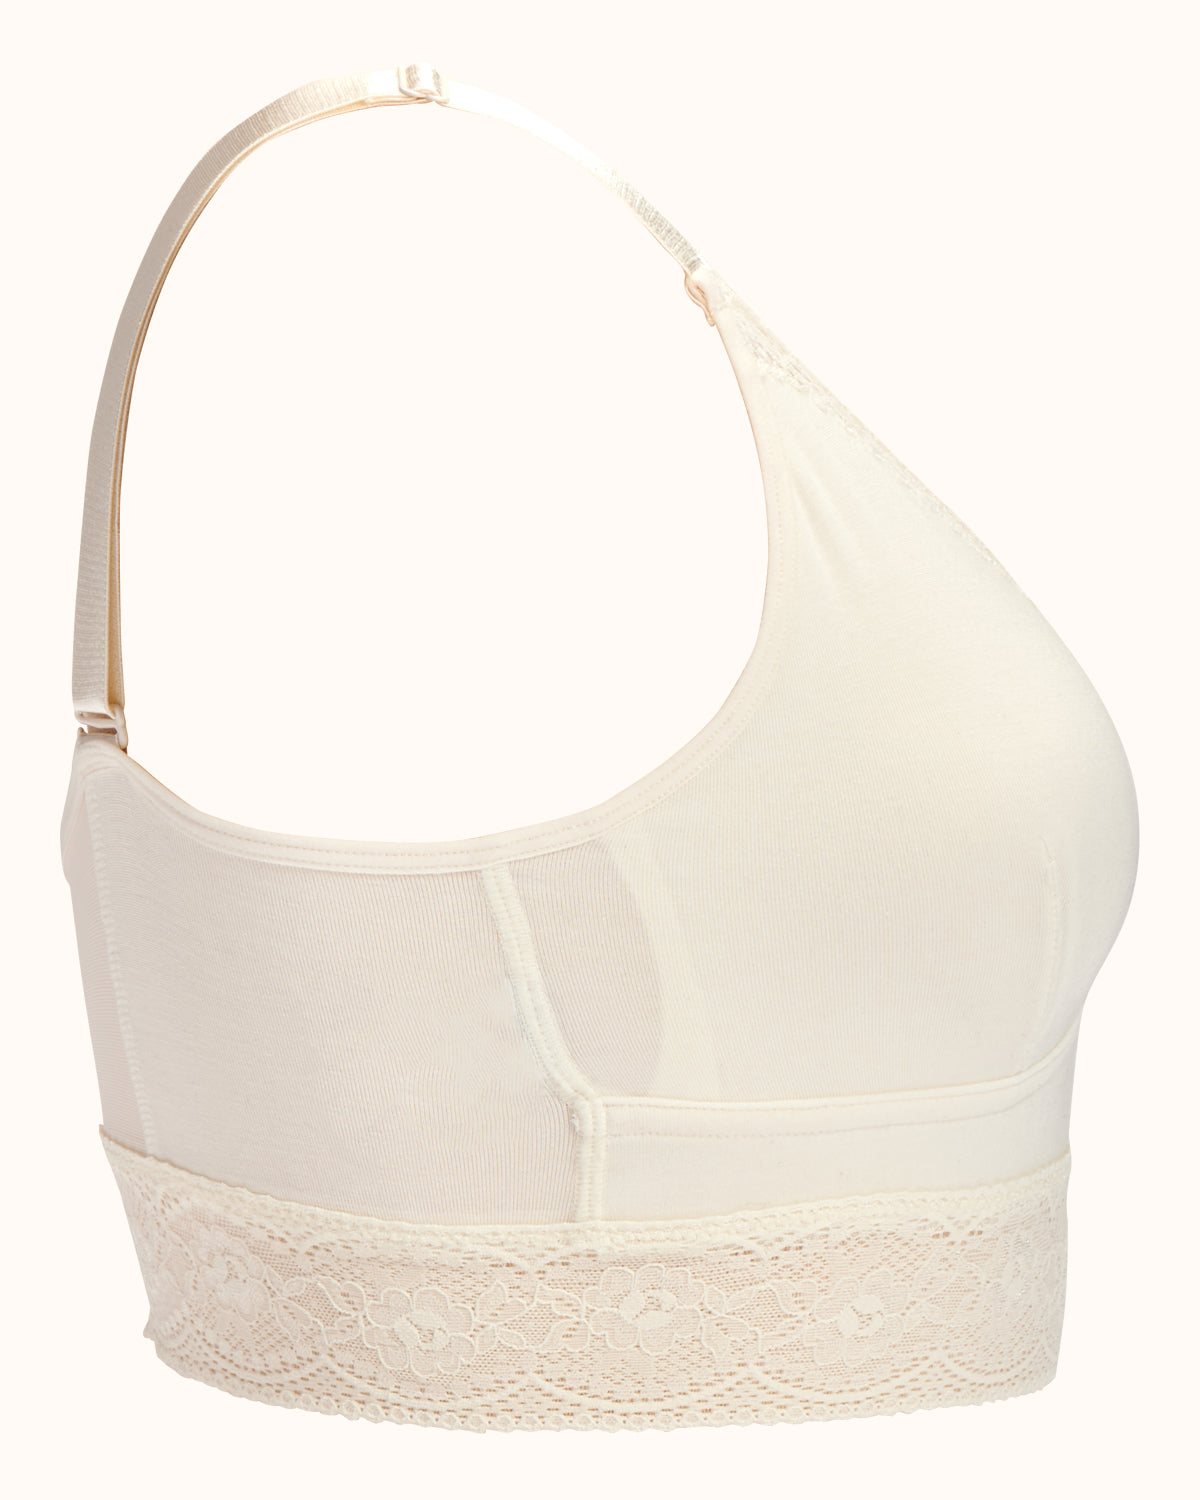 Ivory, longline pullover bra with a lace trim, soft cups, mesh back, adjustable & convertible straps.